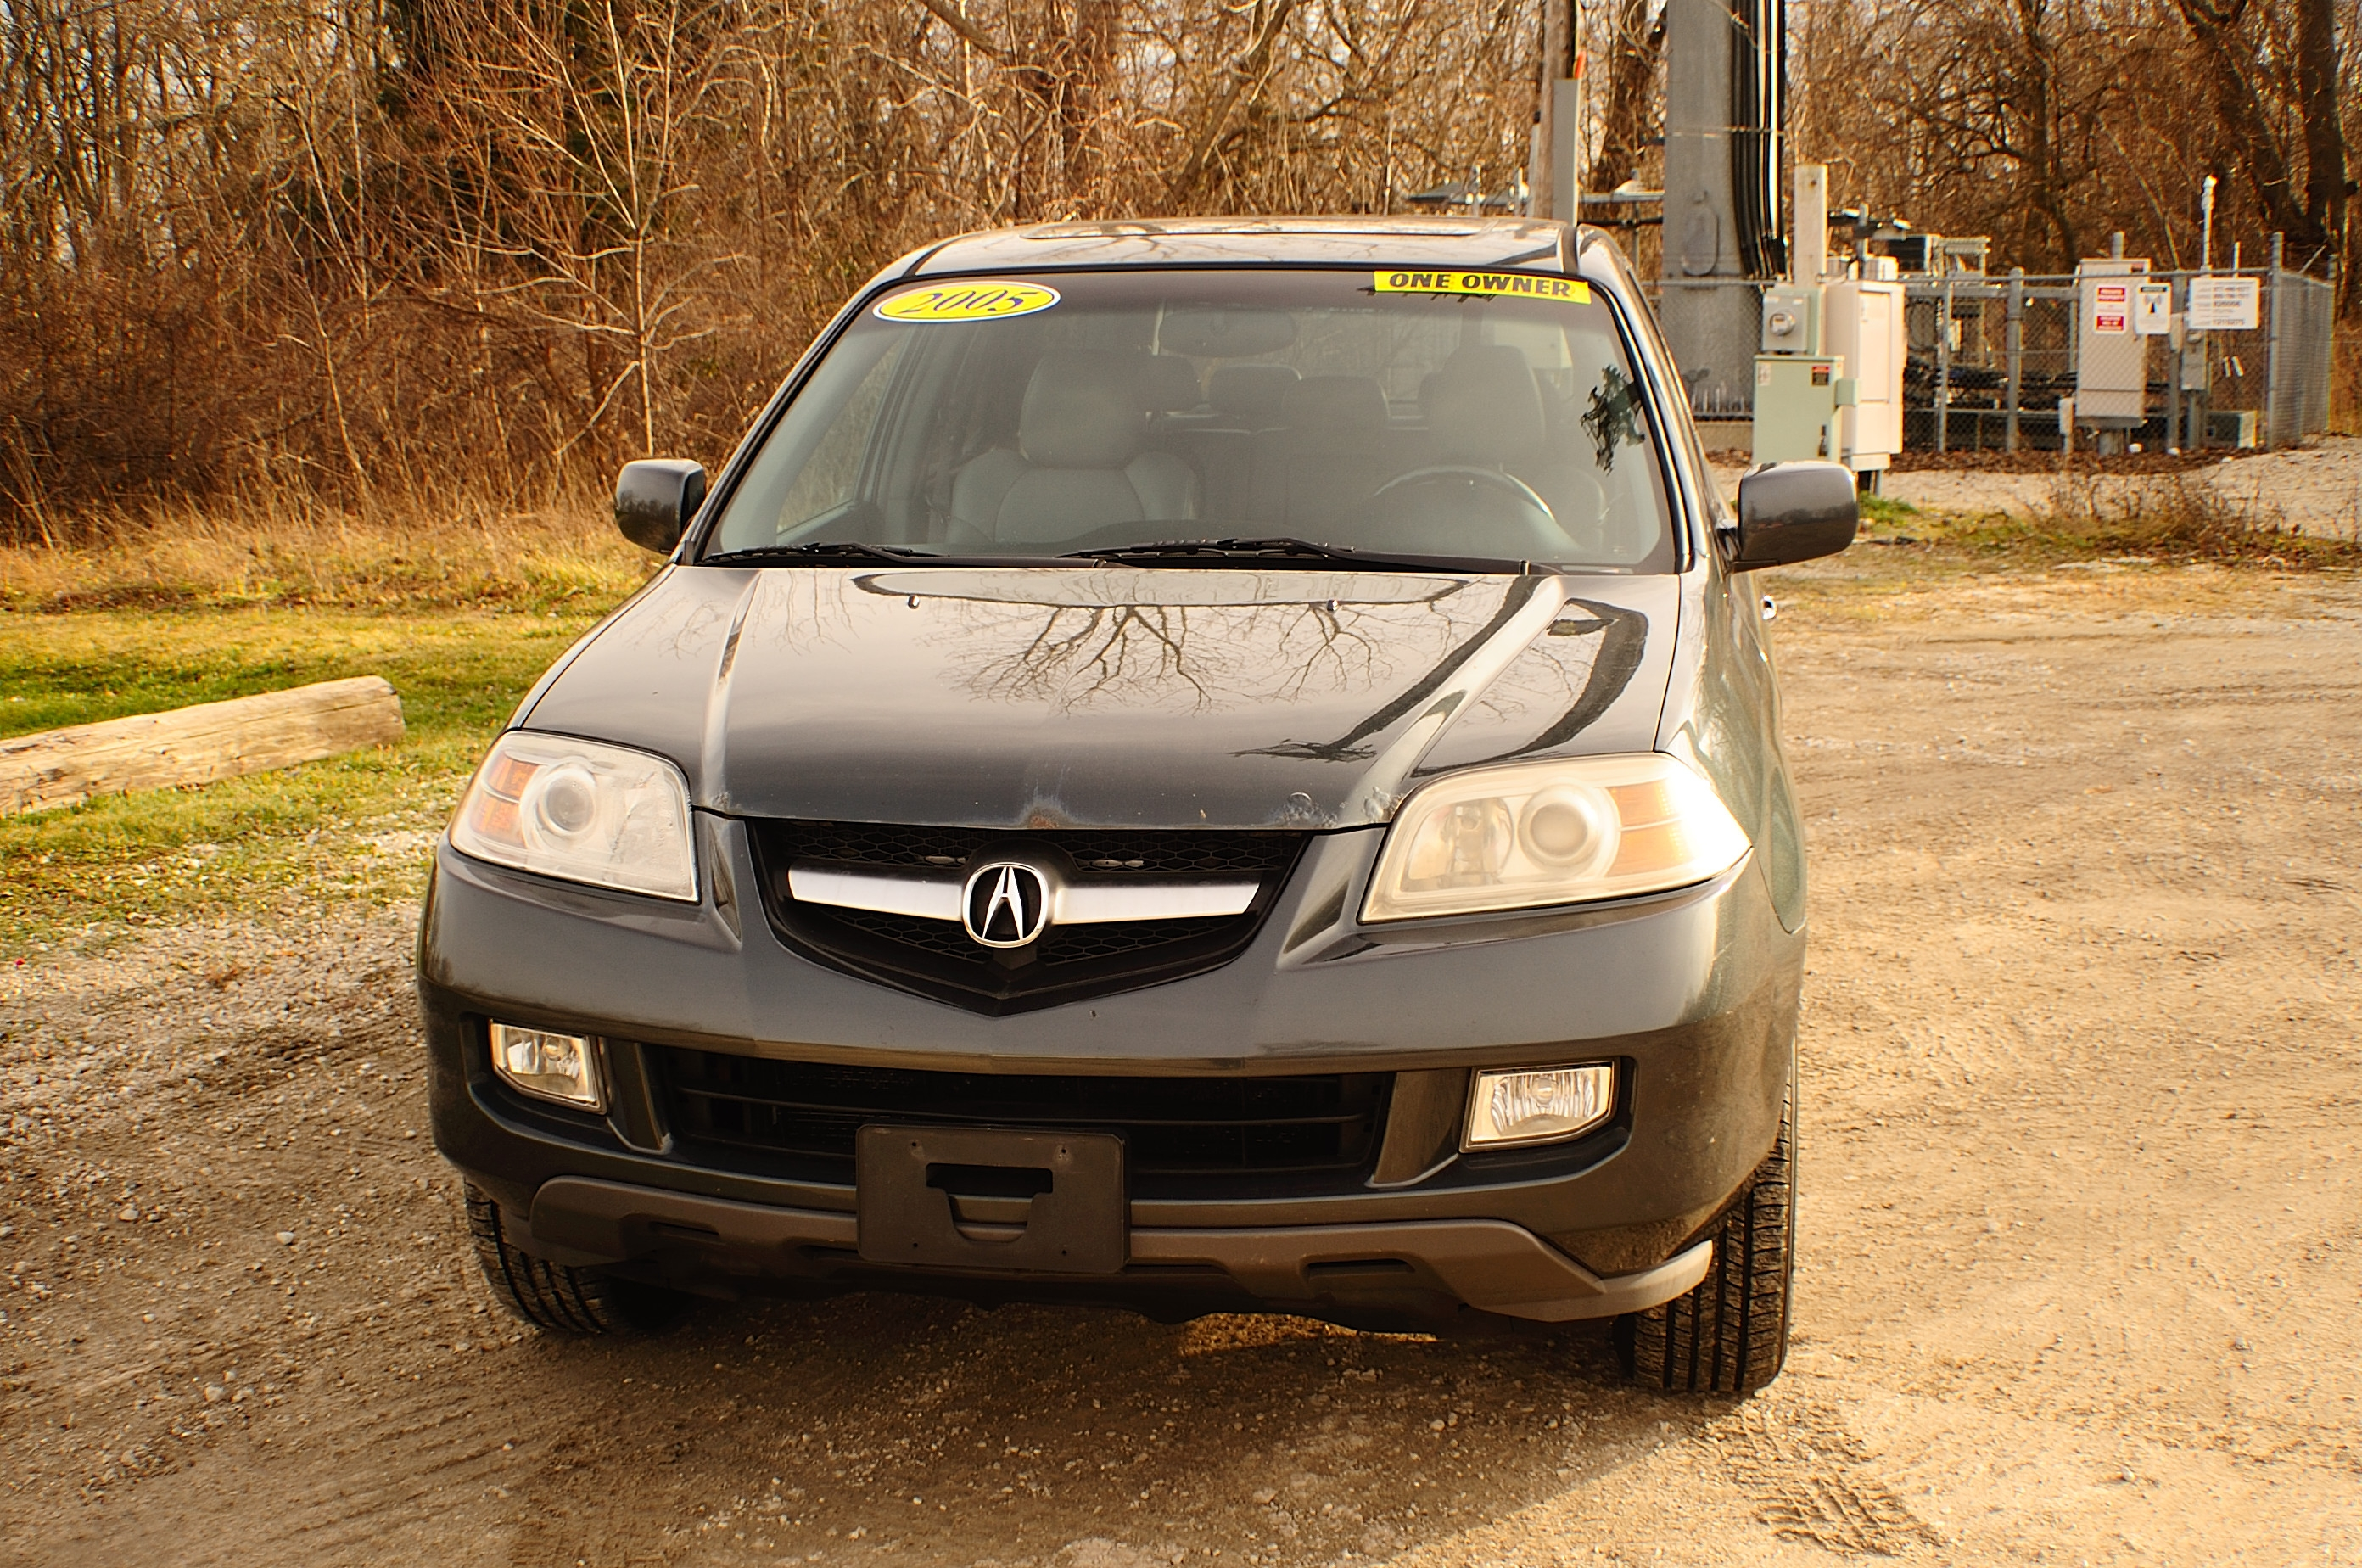 mississauga for mdx acura elite in pkg ontario sale used cars